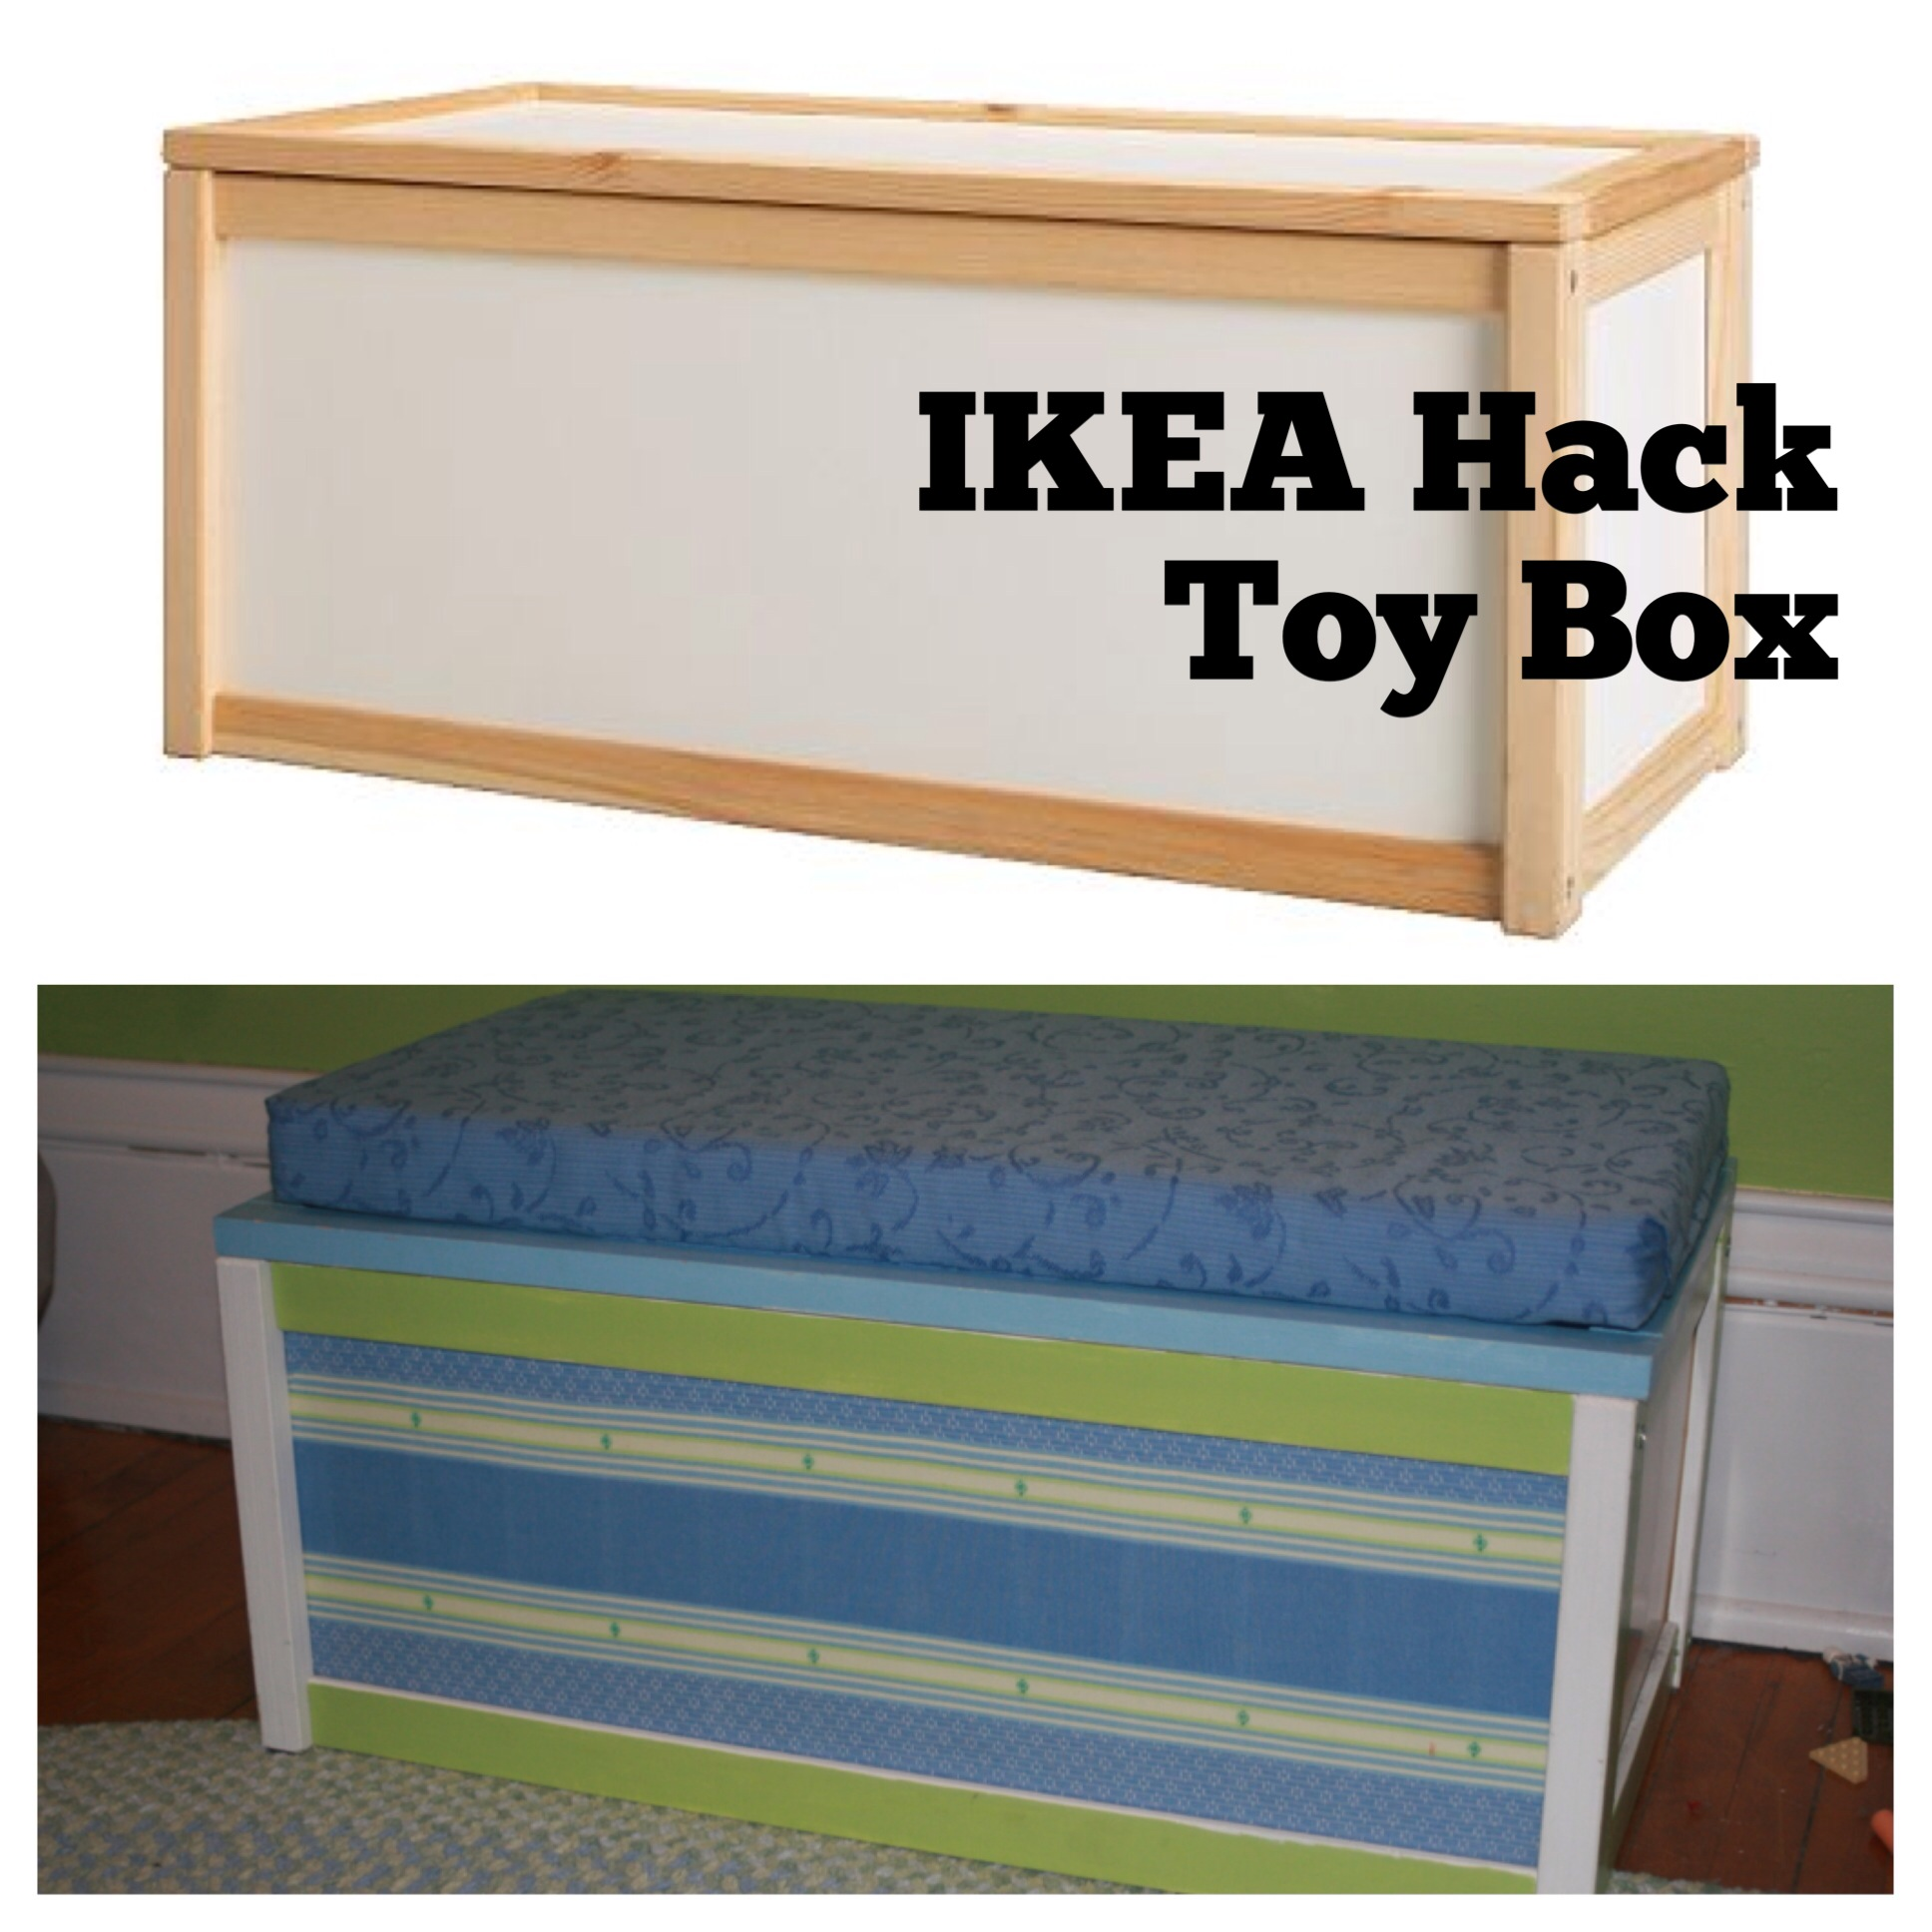 DIY Baby Toy Box Plans Wooden PDF murphy desk plans ...